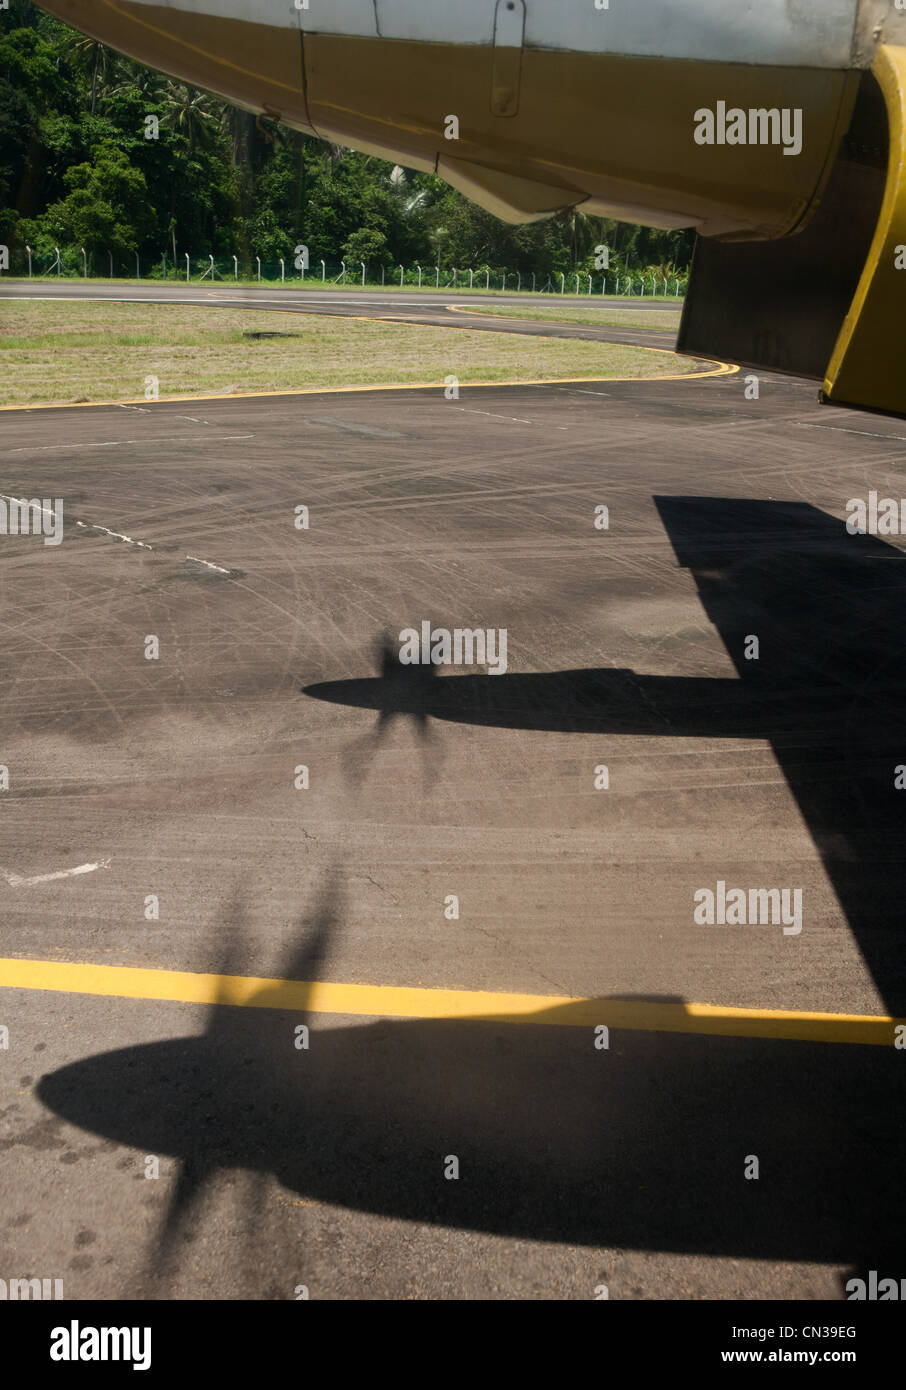 Airplane and shadows of propellers - Stock Image